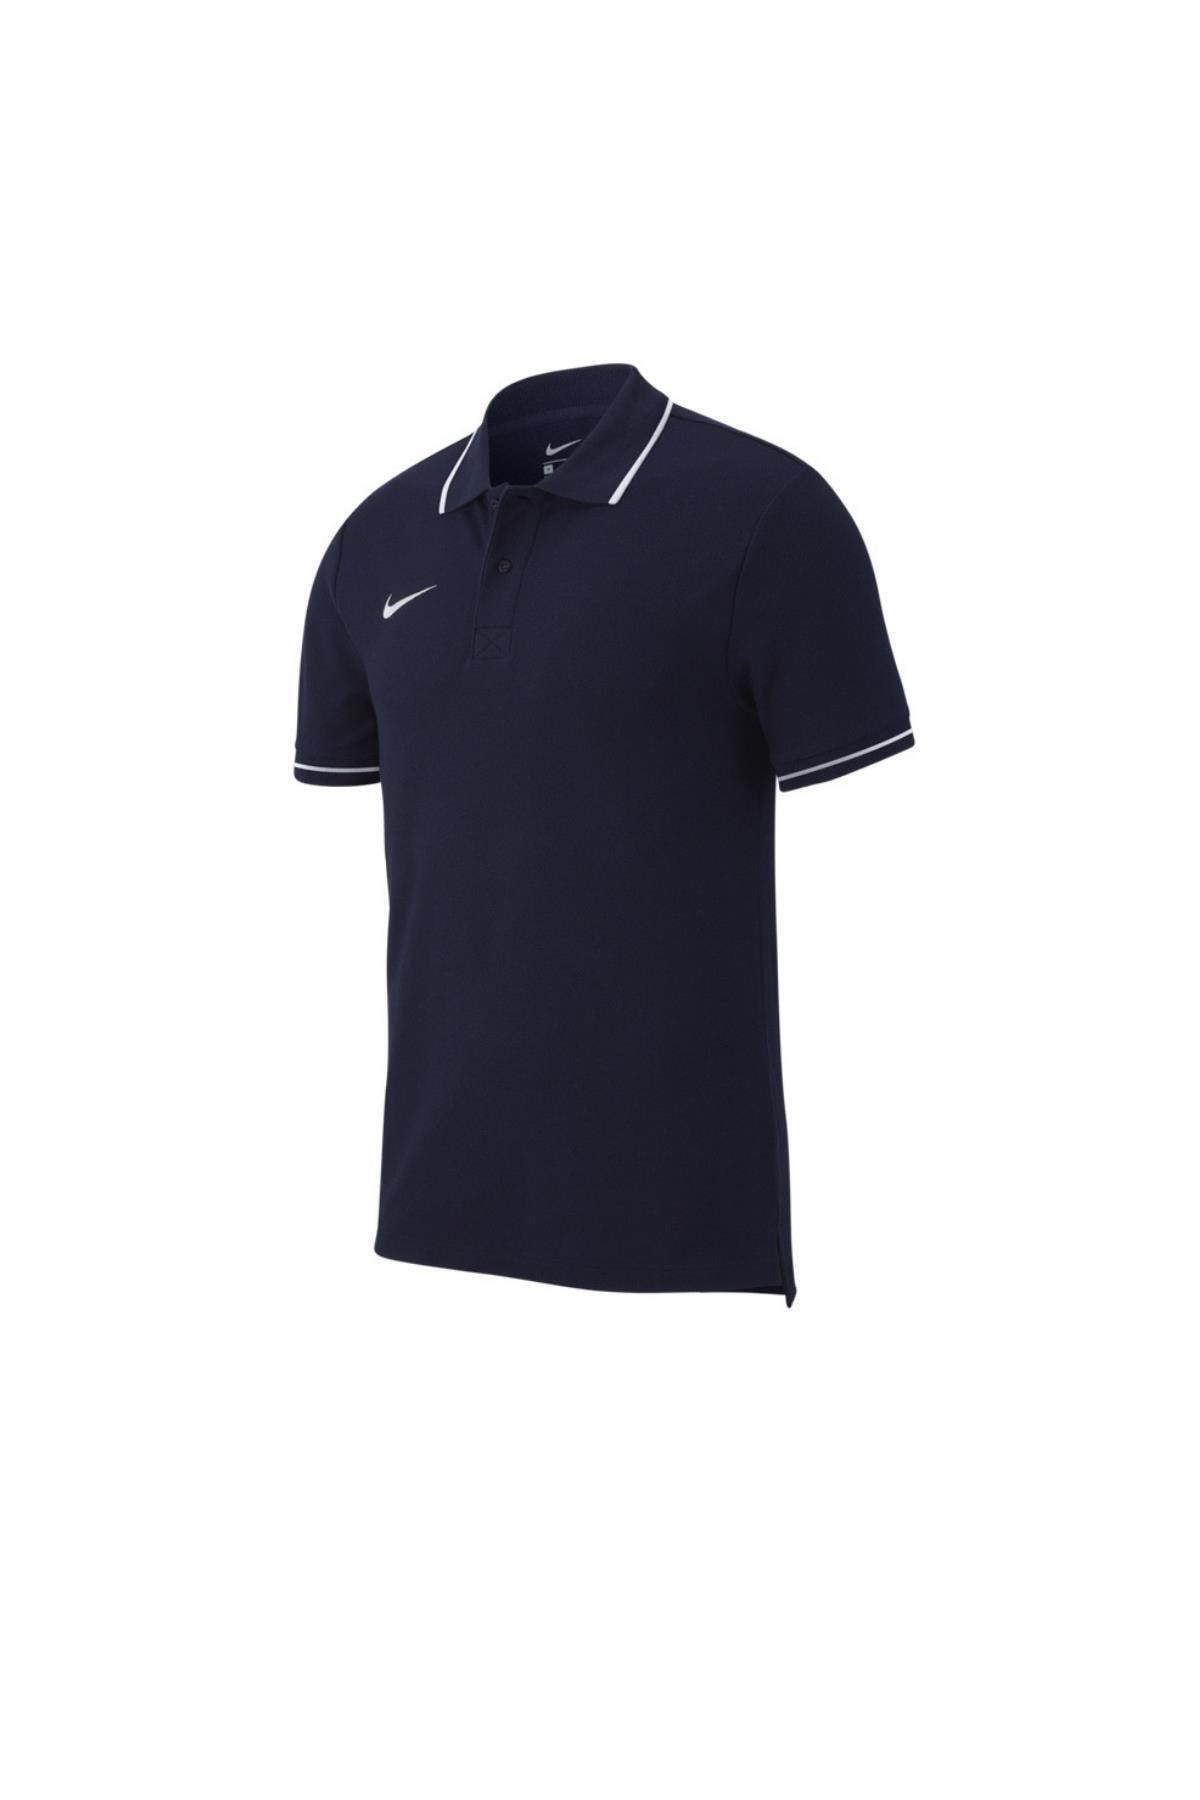 Nike M Polo Tm Club19 Ss Erkek T-shirt 2